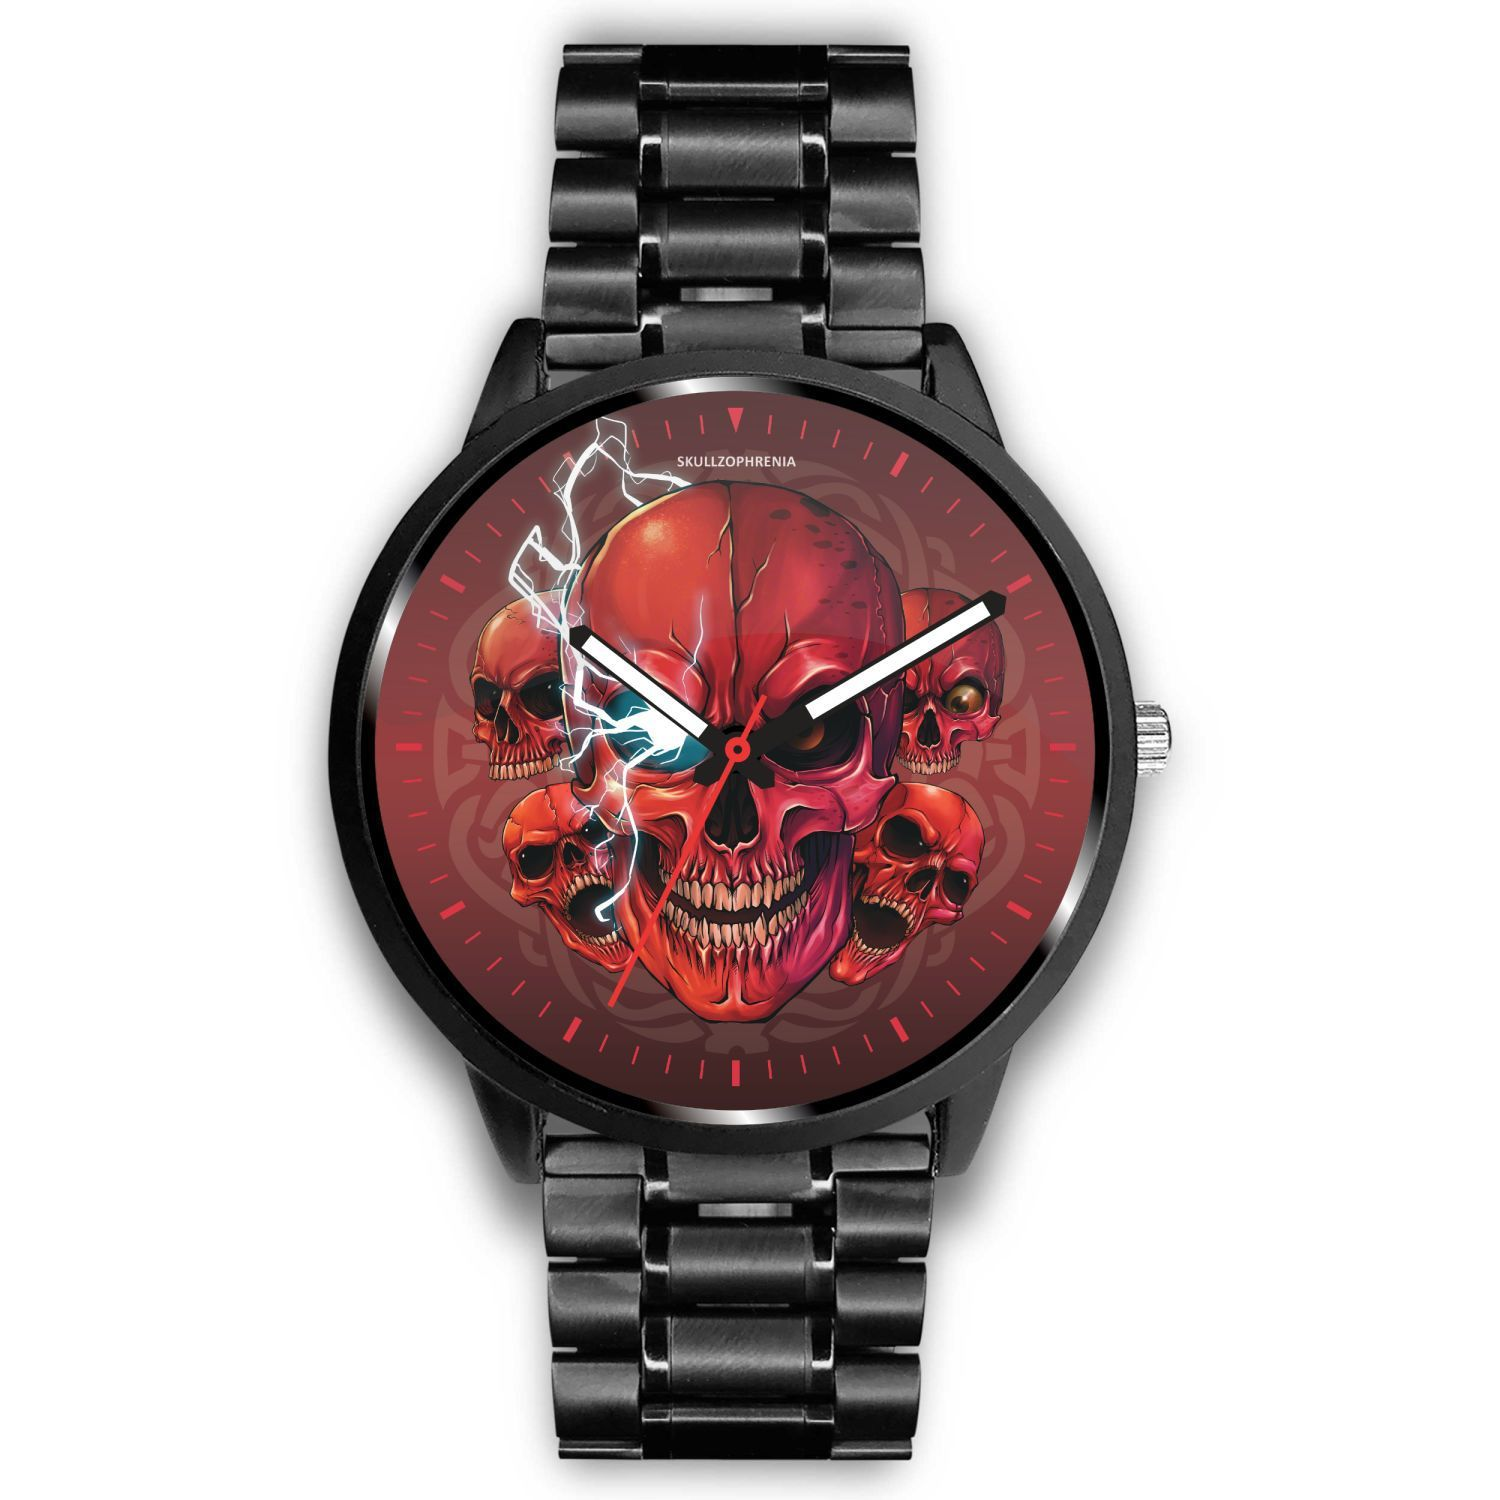 [Limited Edition] Mad Conqueror™ Skull Watch-Watch-wc-fulfillment-Mens 40mm-Metal Link-SKULLZOPHRENIA